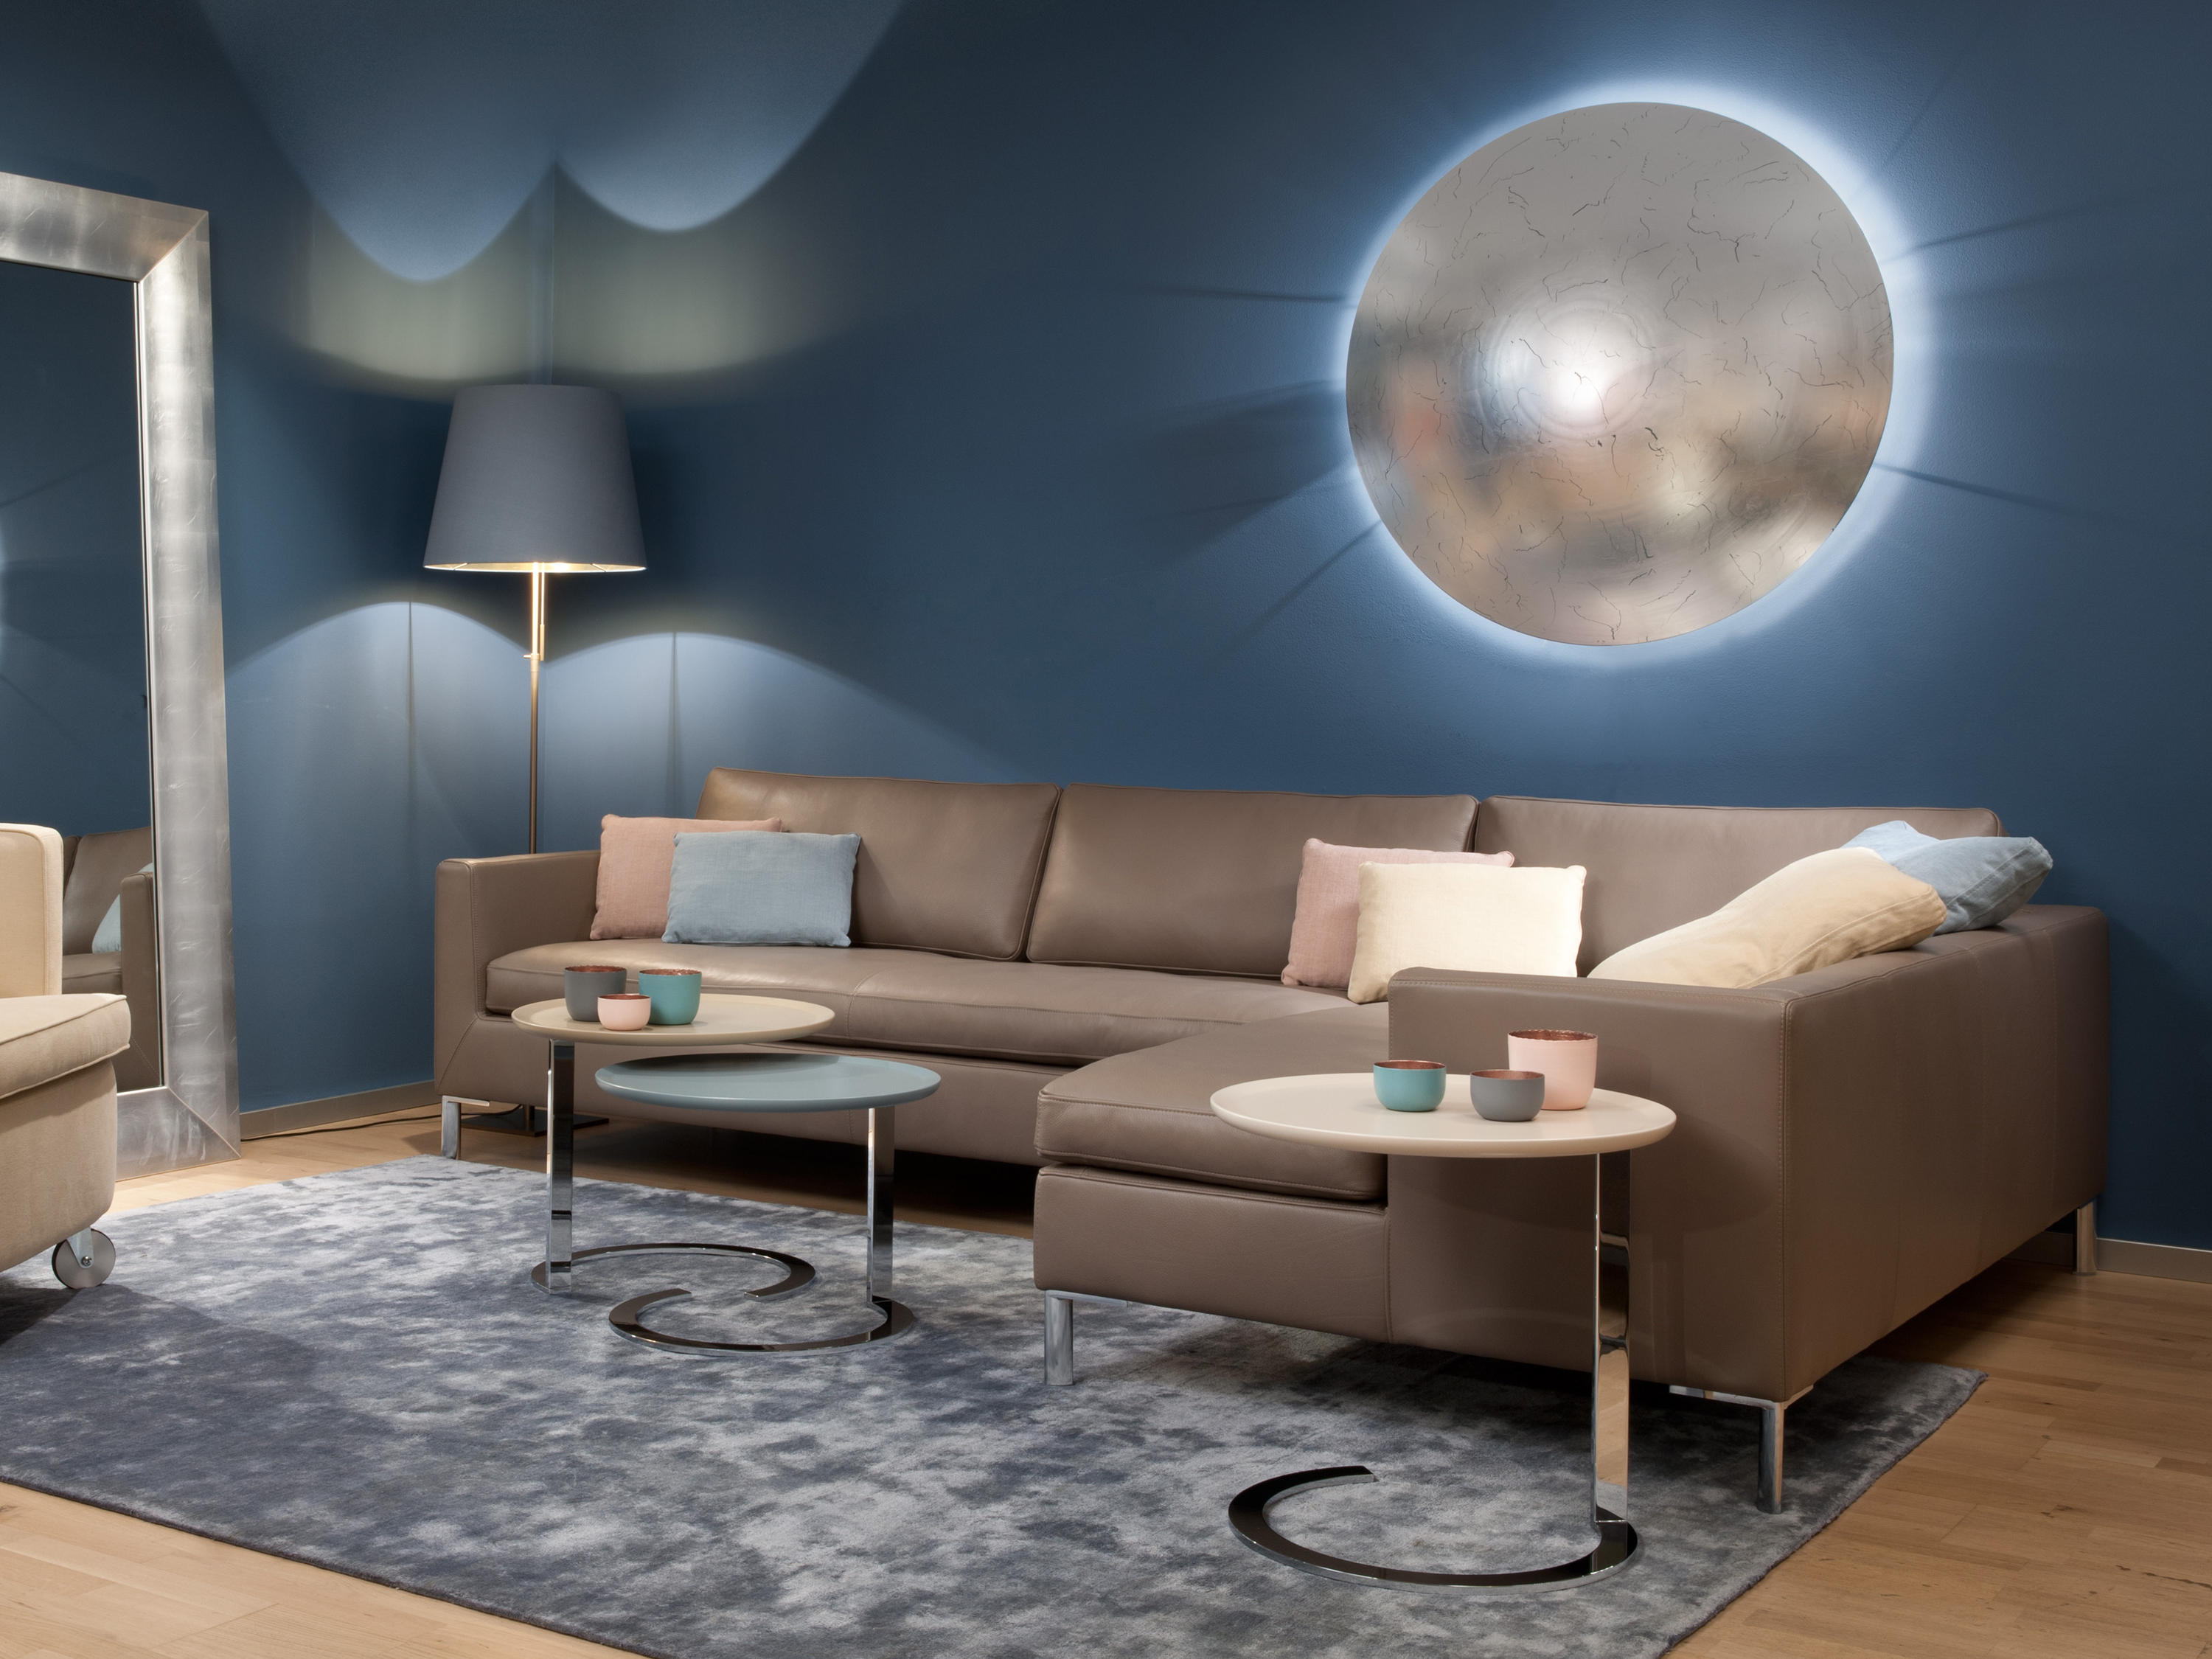 byron sofa sofas christine kröncke architonic